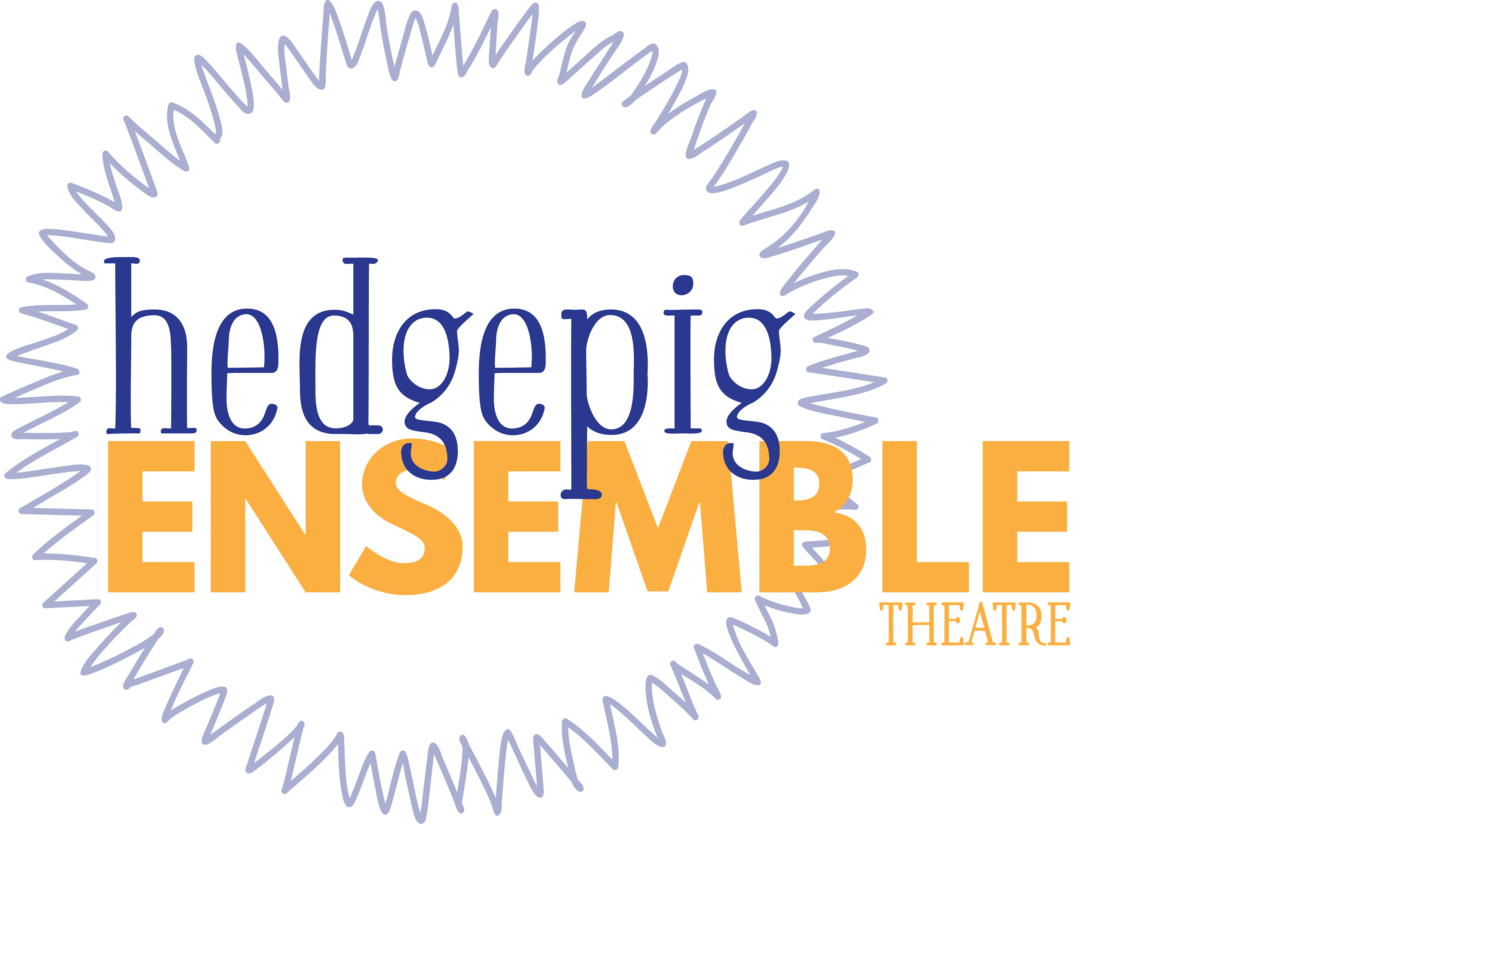 Hedgepig Ensemble Theatre